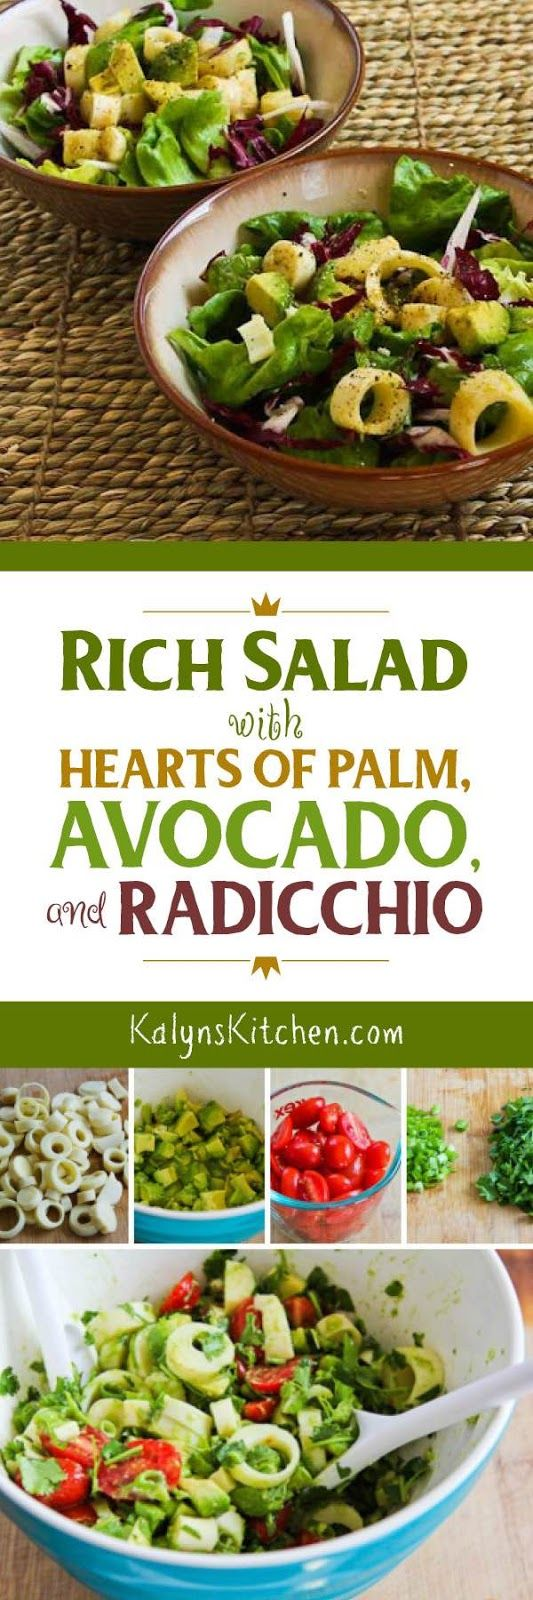 Rich Salad with Hearts of Palm, Avocado, and Radicchio is perfect for a holiday meal or special dinner, and this amazing salad is low-carb, gluten-free, dairy-free, and South Beach Diet friendly, and if you skip the Worcestershire sauce it can easily be Paleo or Whole 30.  [found on KalynsKitchen.com]